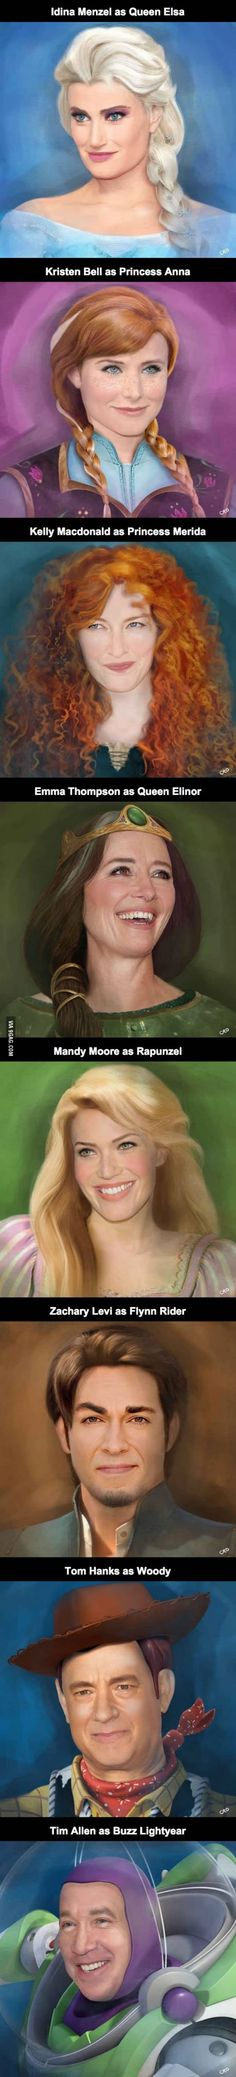 People behind Disney's voices as their characters